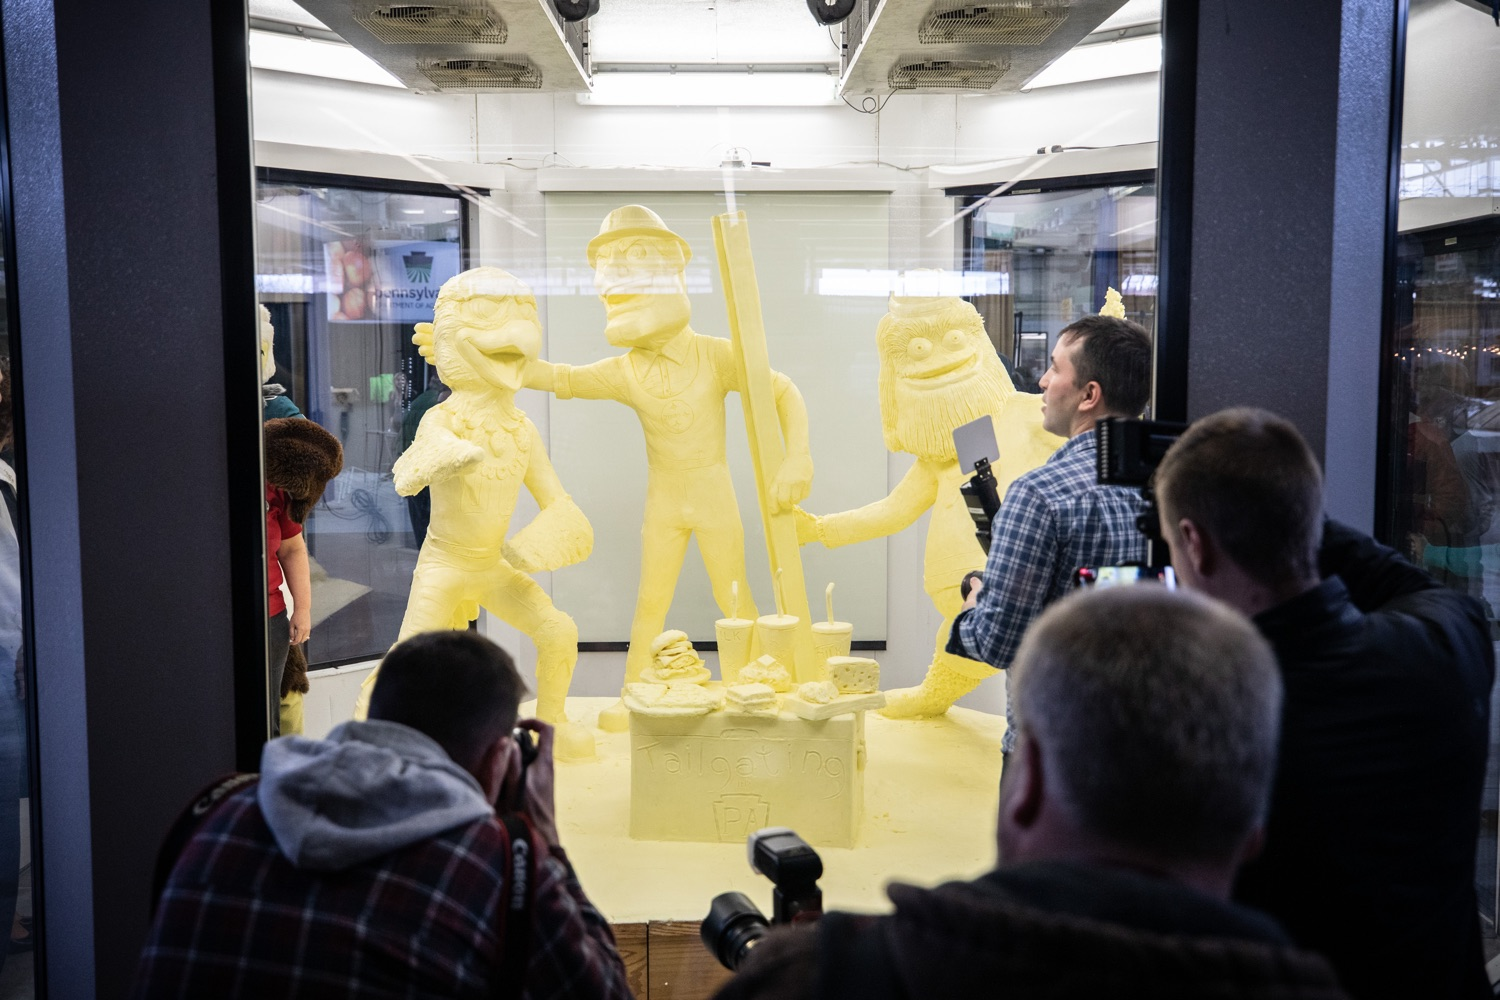 "<a href=""http://filesource.abacast.com/commonwealthofpa/photo/17646_agric_butter_sculpture_dz_006.jpg"" target=""_blank"">⇣ Download Photo<br></a>Press crowdind around the butter sculpture for the big reveal. Lt. Governor John Fetterman and Secretary of Agriculture Russell Redding today unveiled the 2020 Pennsylvania Farm Show butter sculpture, carved from a half-ton of butter depicting three of Pennsylvanias beloved professional sports mascots: Philadelphia Flyers Gritty, Philadelphia Eagles Swoop, and Pittsburgh Steelers Steely McBeam celebrating with a spread of Pennsylvania dairy products. The sculpture, a long-time Farm Show staple, encourages Pennsylvanians to be a fan of Pennsylvania dairy and give a cheer to the more than 6,200 dairy farmers in the commonwealth.  Harrisburg, PA  January 2, 2020"